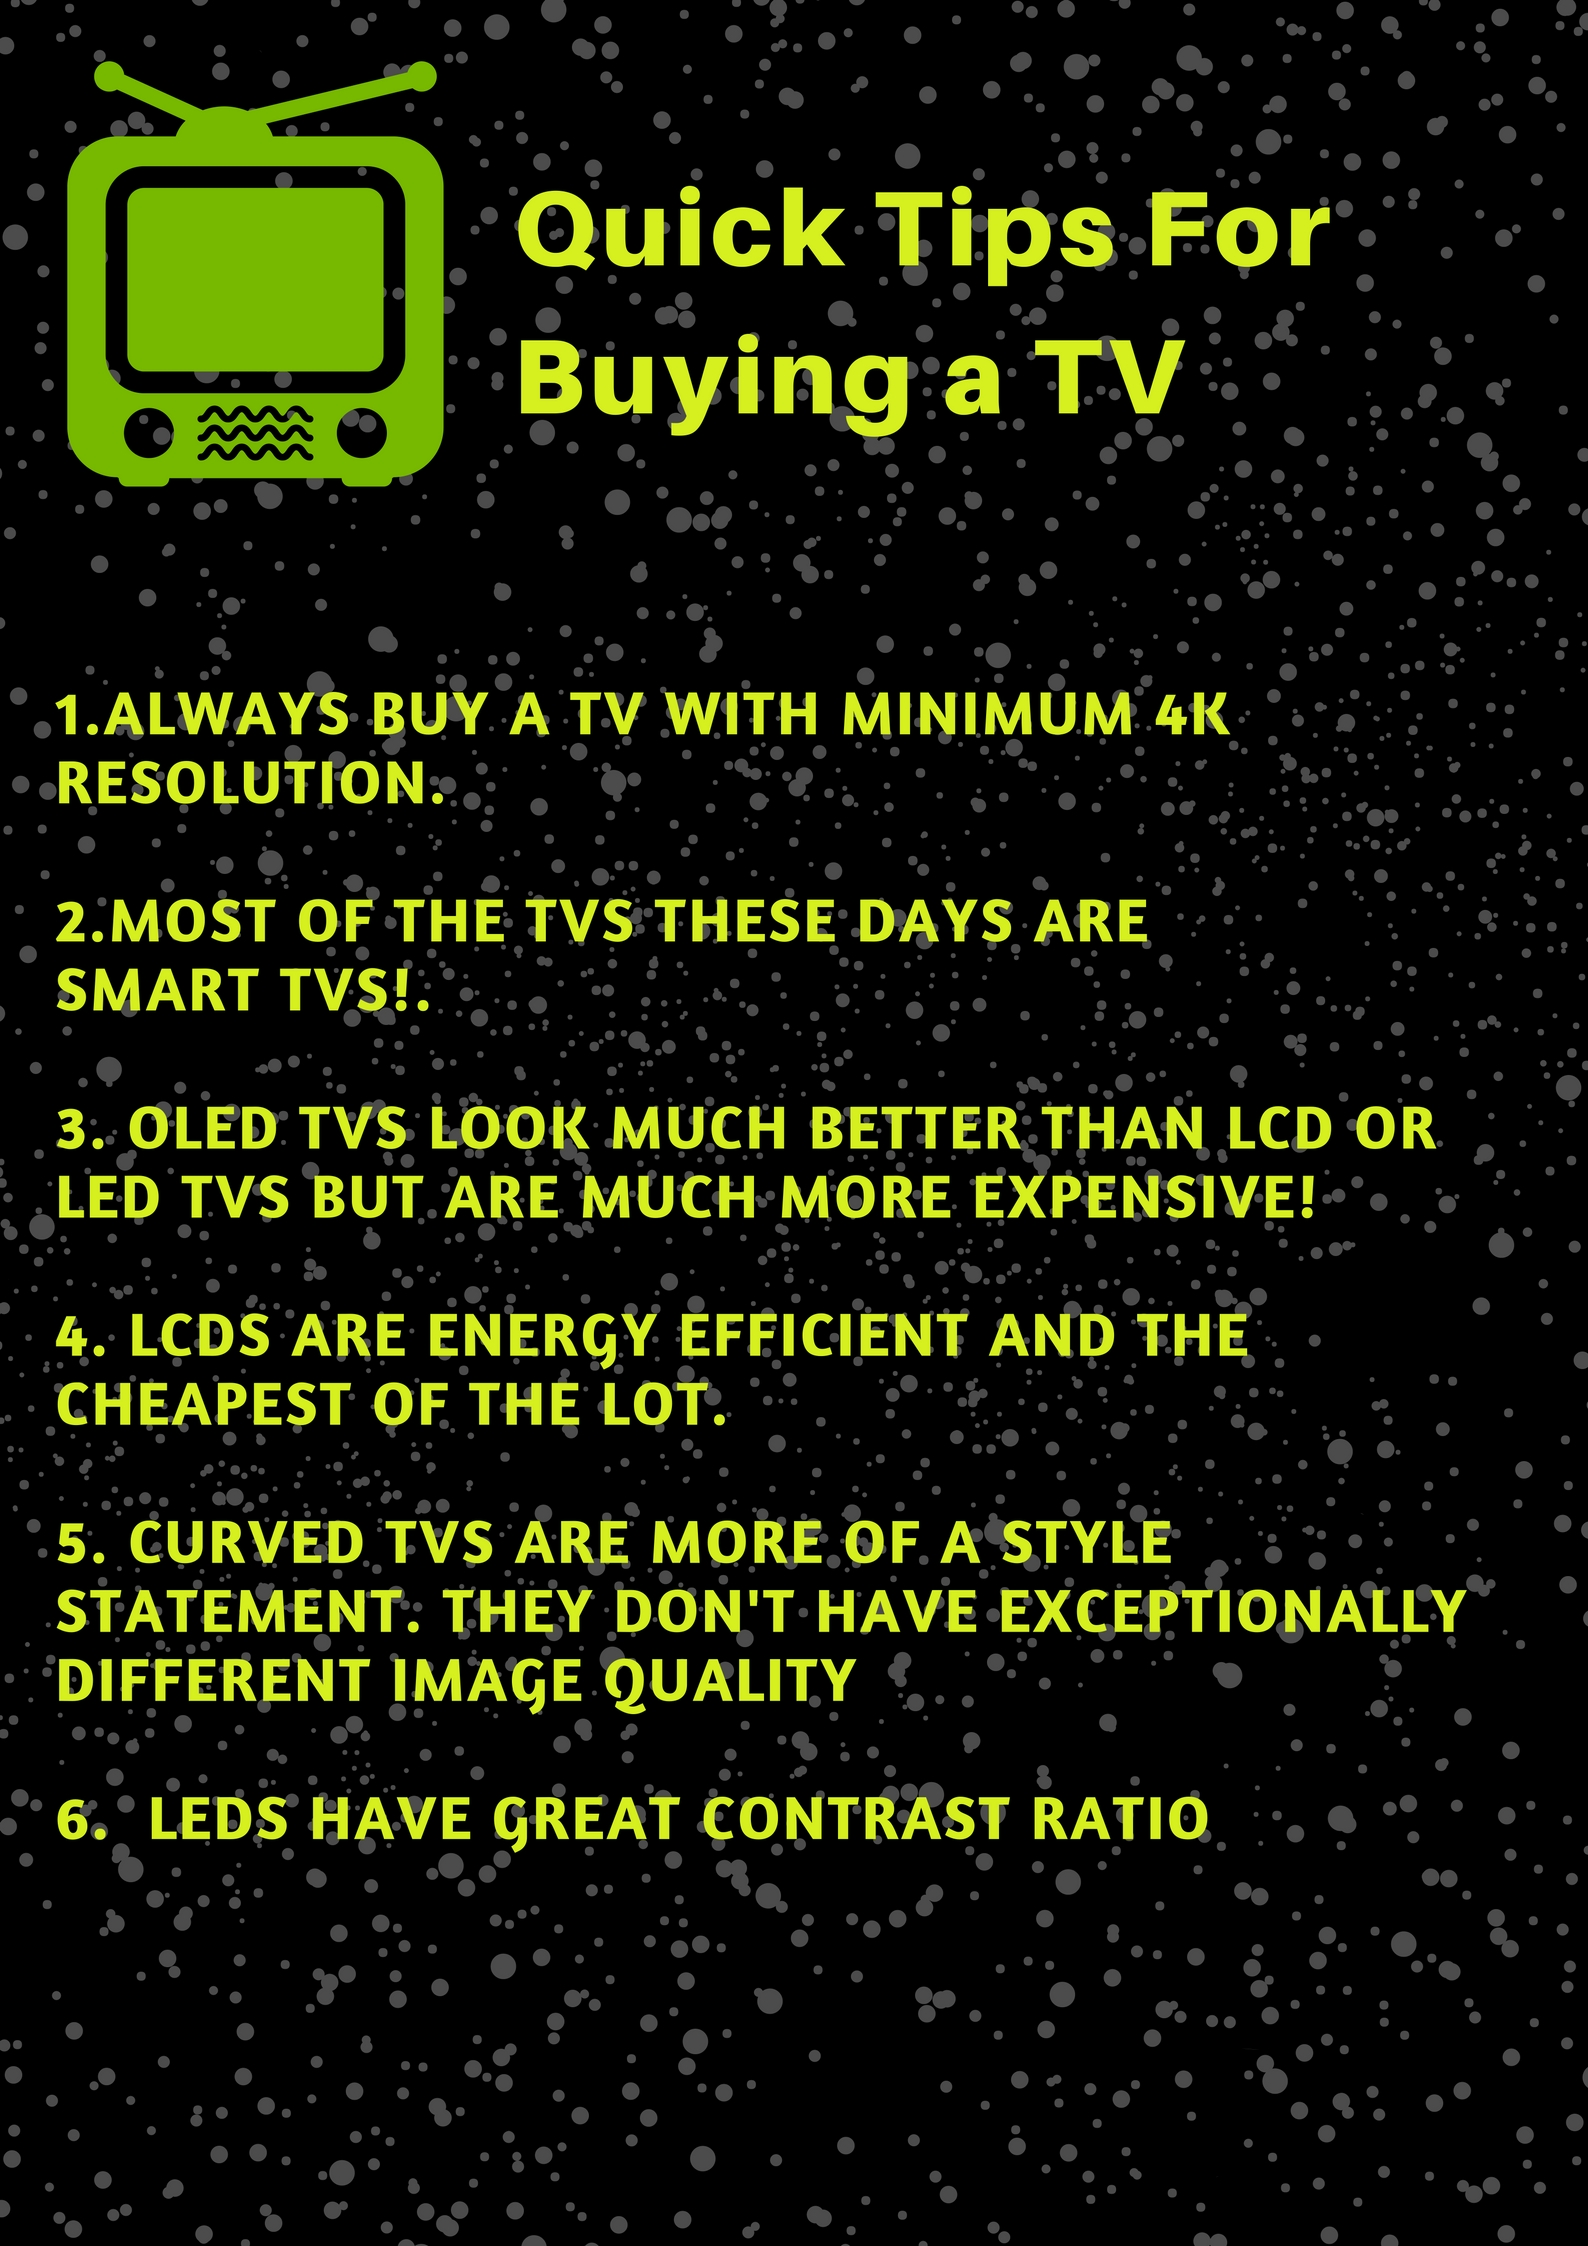 Quick tips for TV